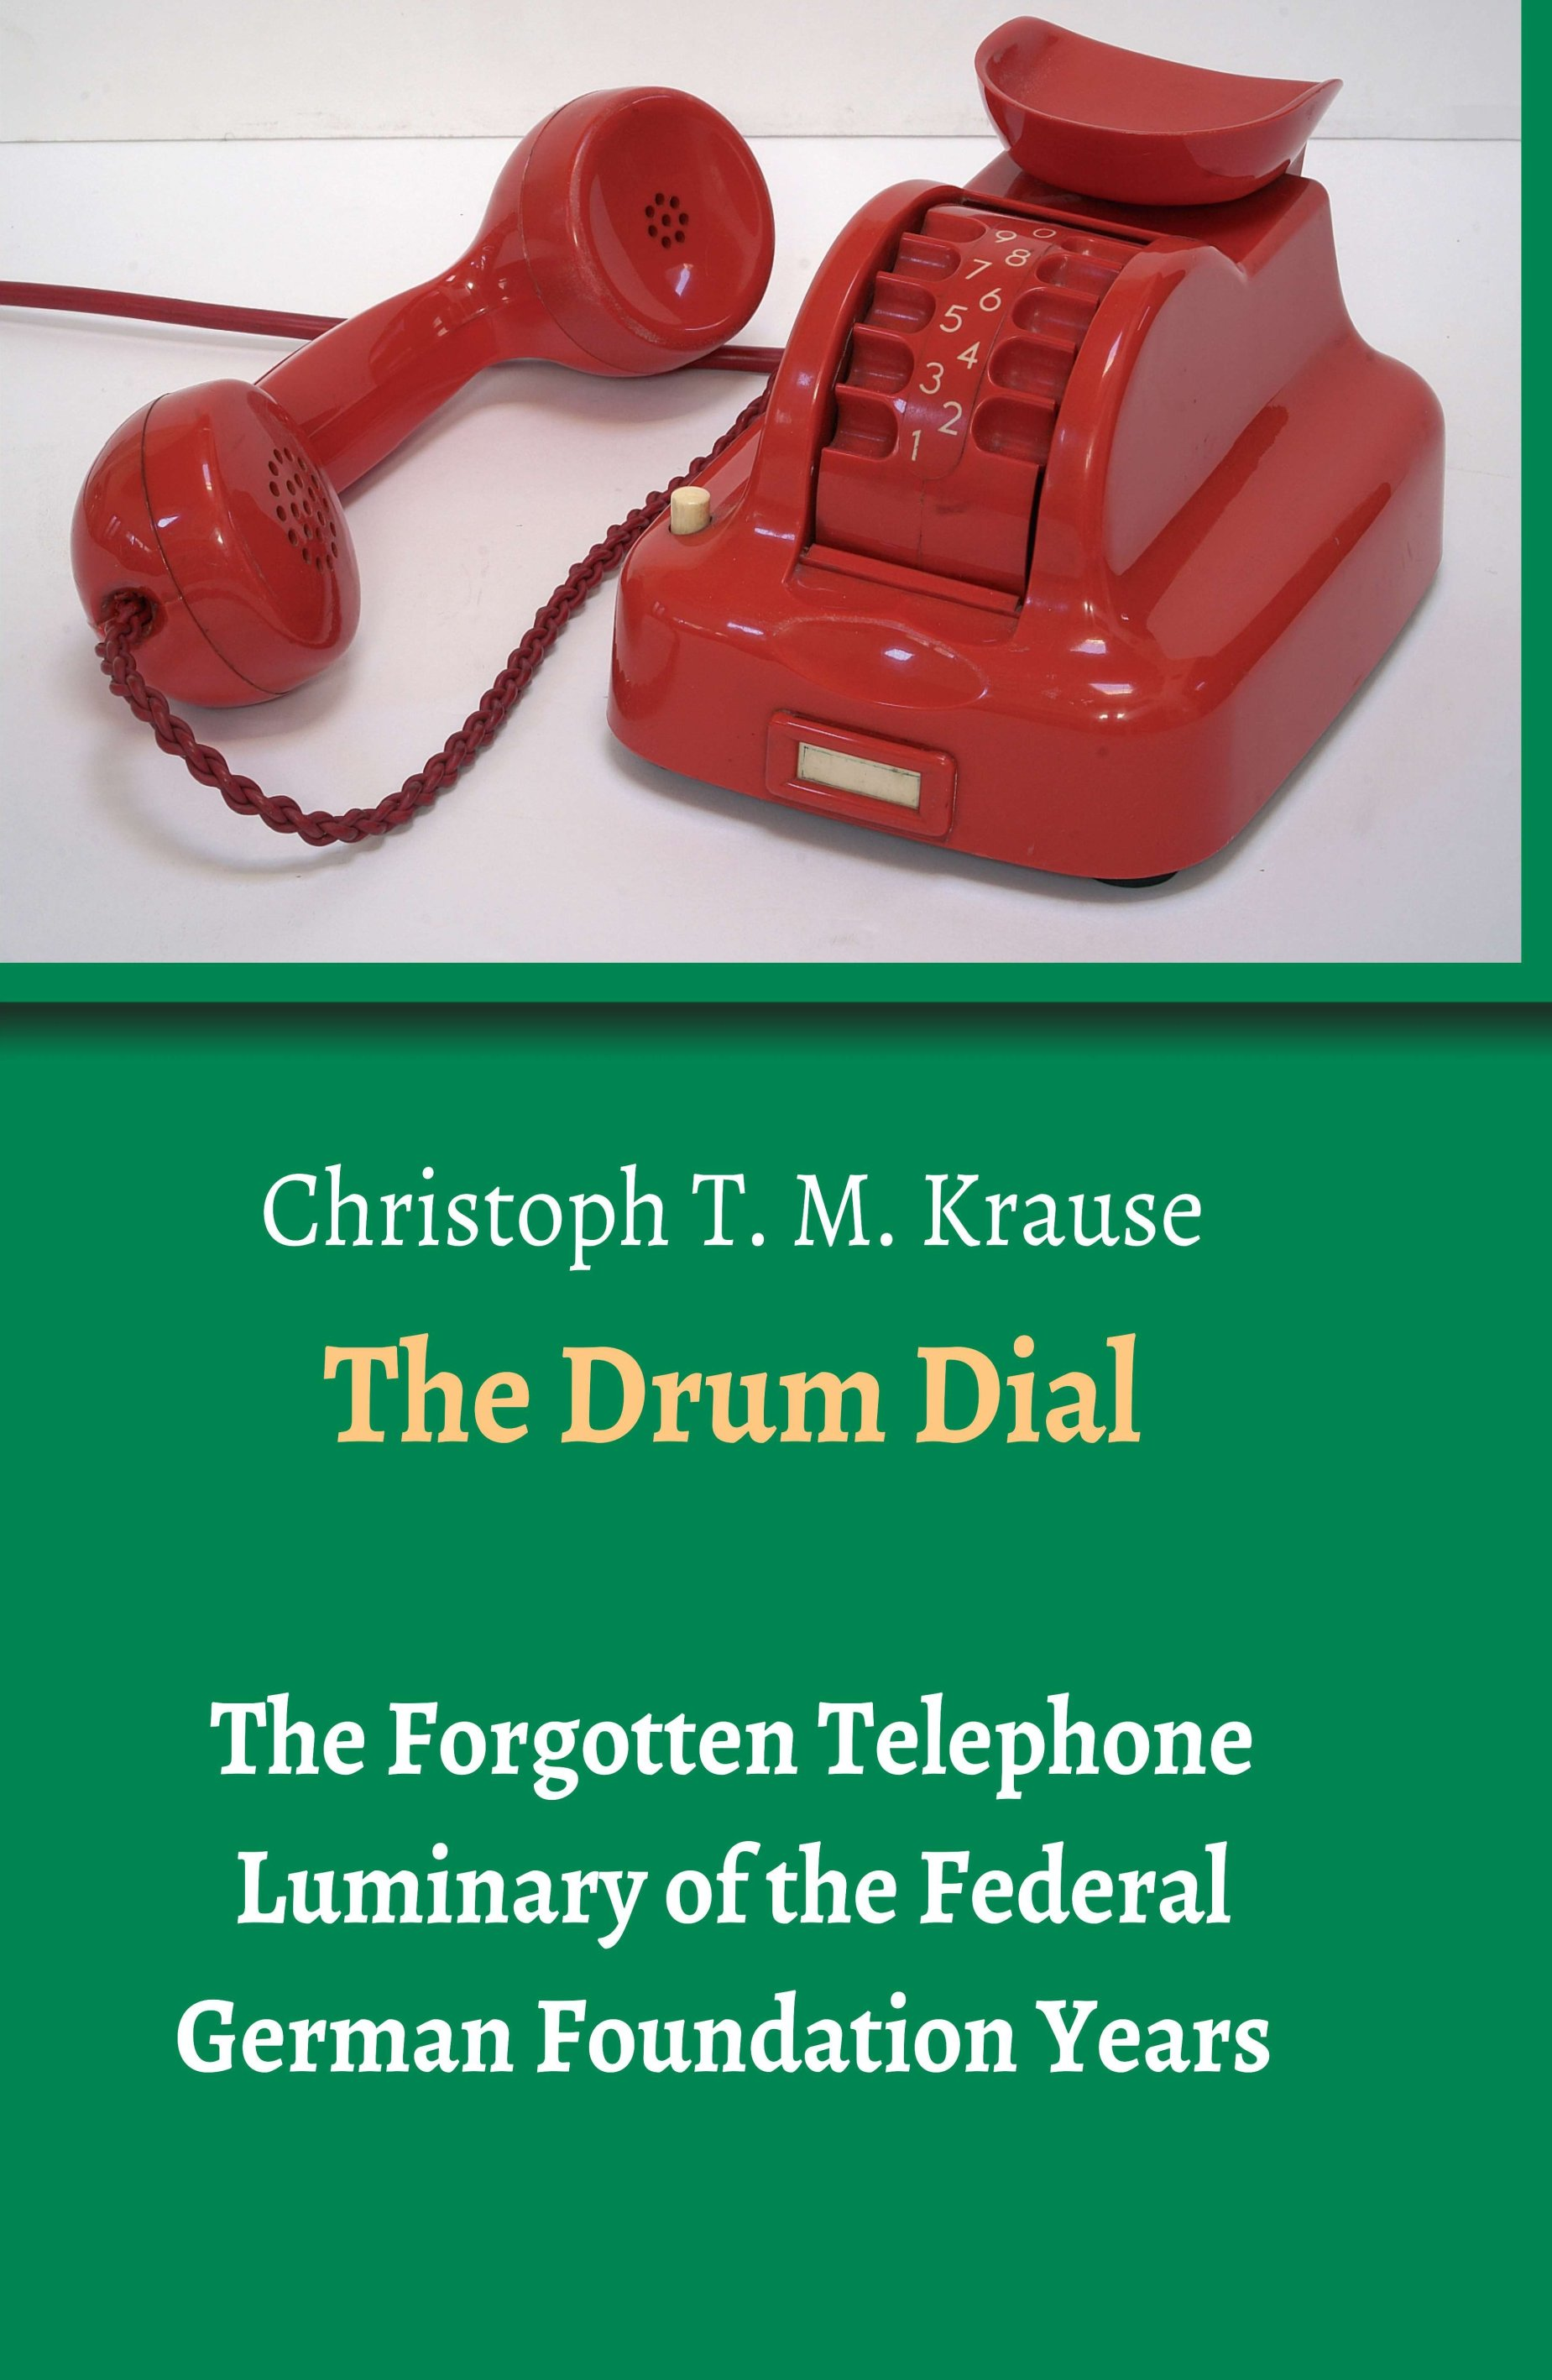 The Drum Dial - The (his)story of an unusual historic telephone